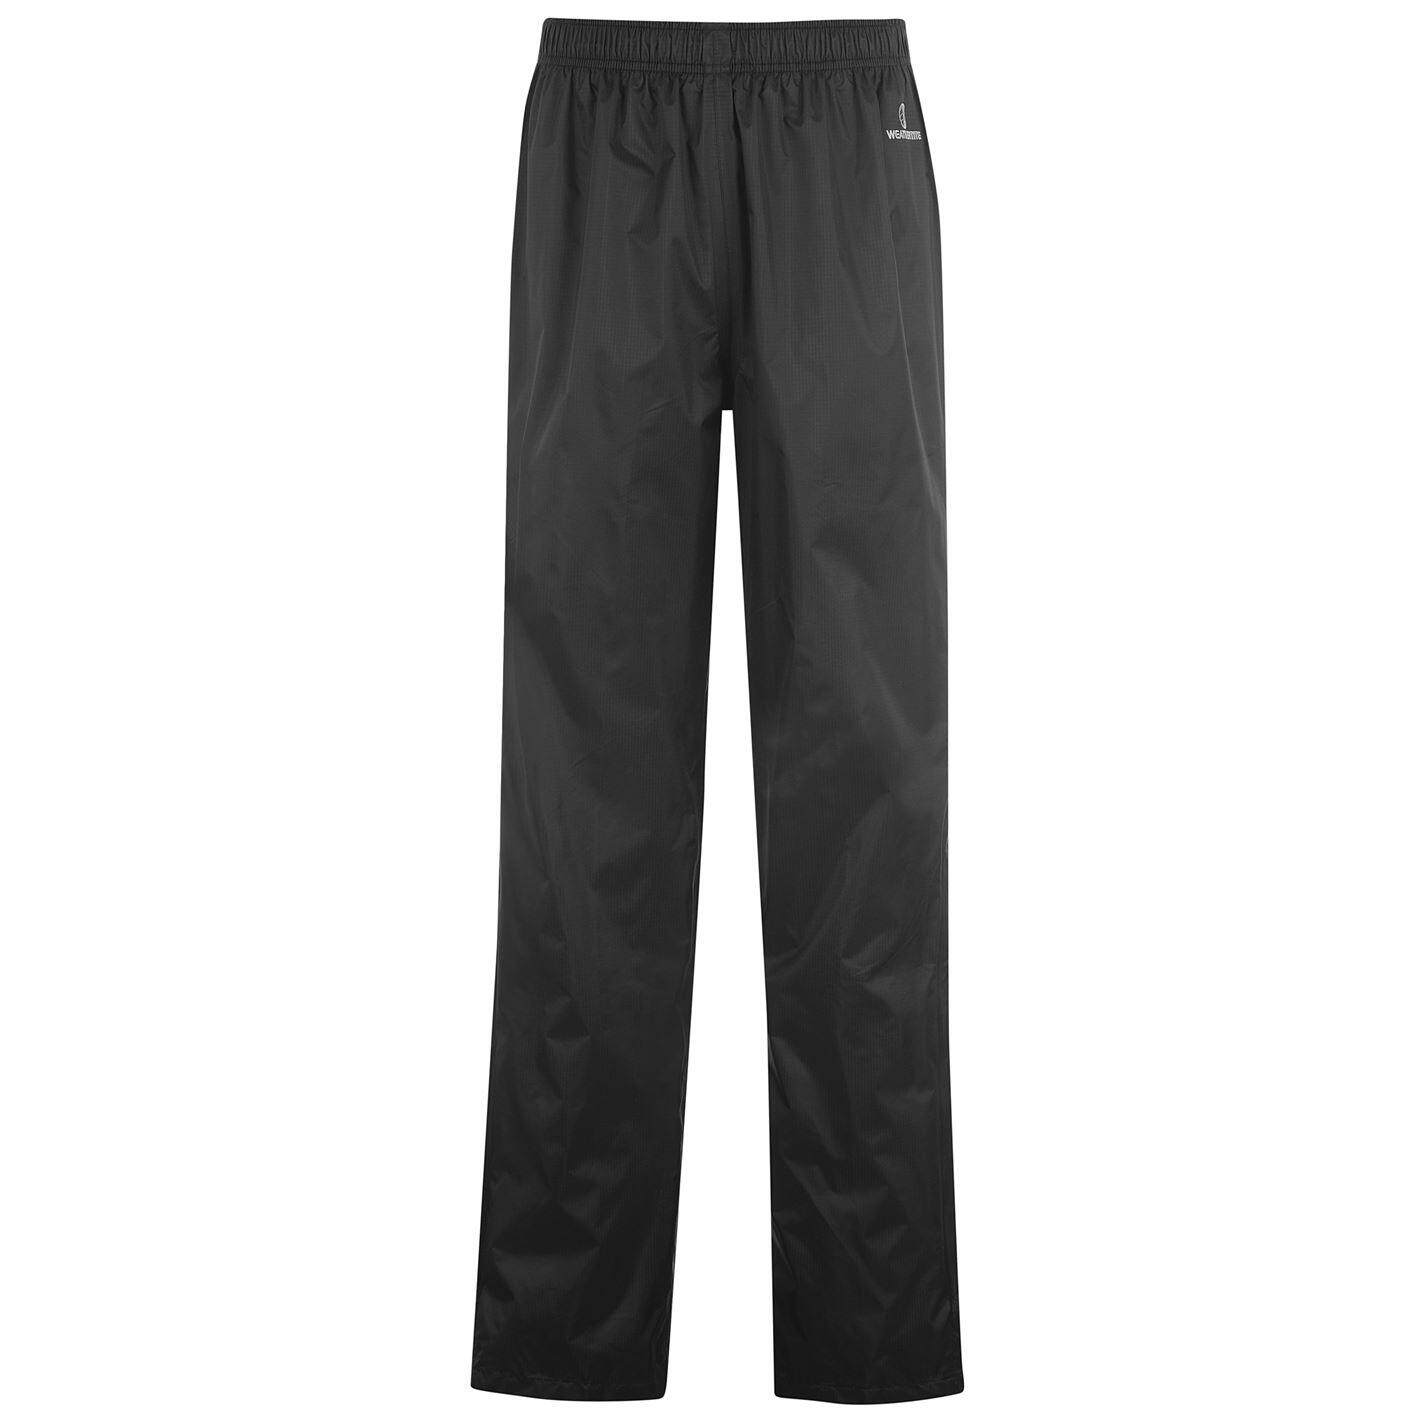 Karrimor Kids Boys Sierra Pants (black) By Sports Direct Mst Sdn Bhd.